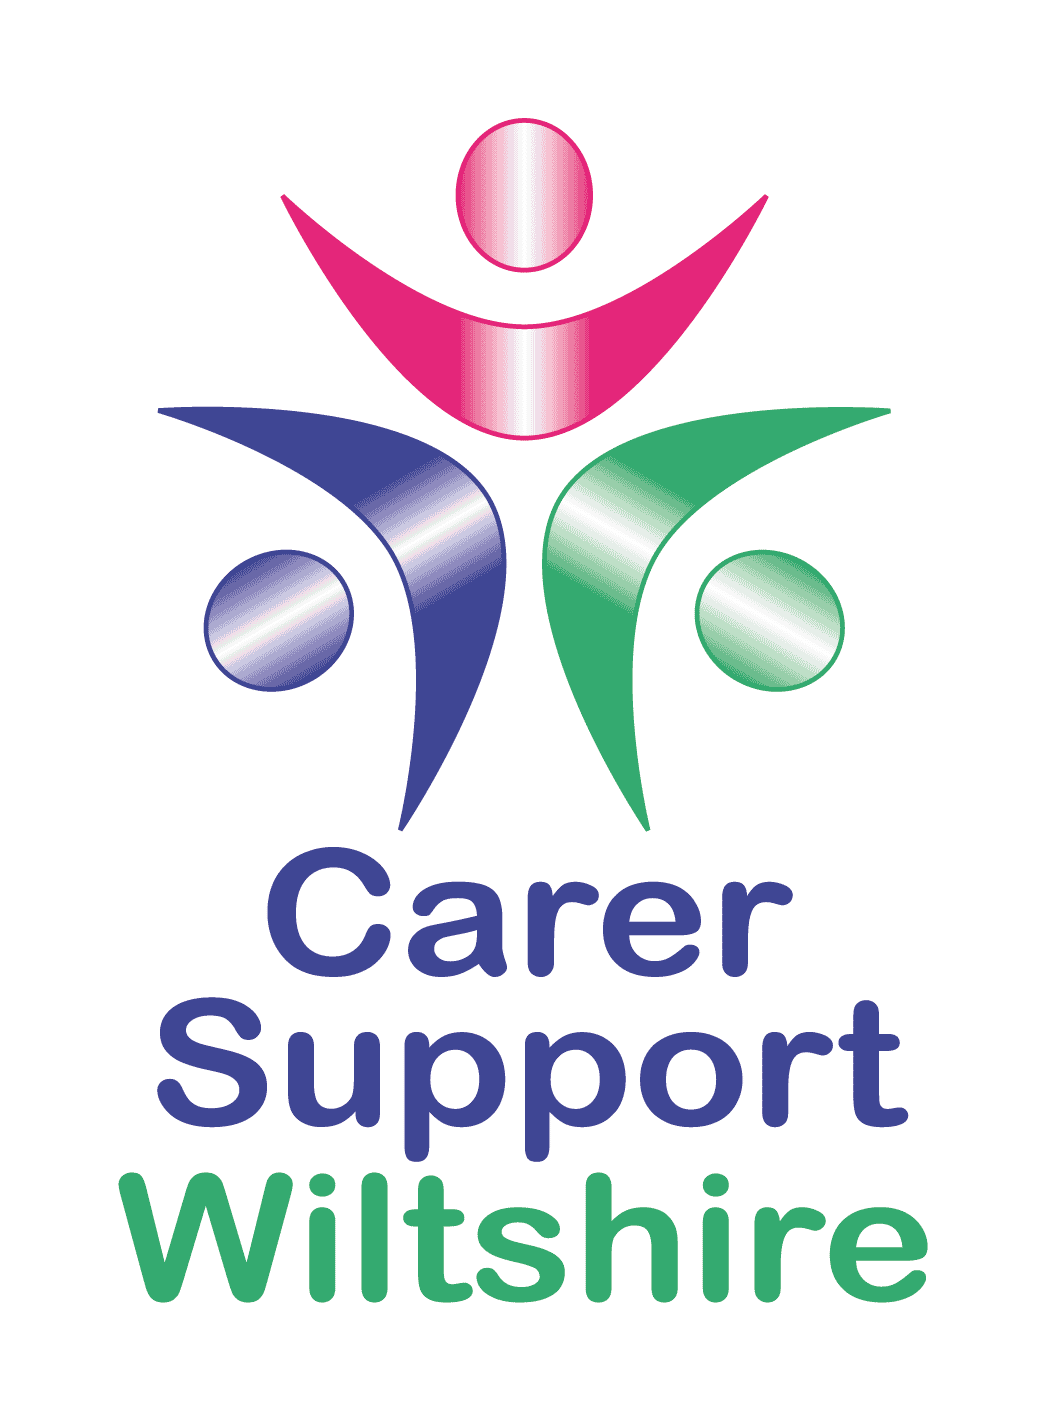 New support scheme for military carers launched in Wiltshire